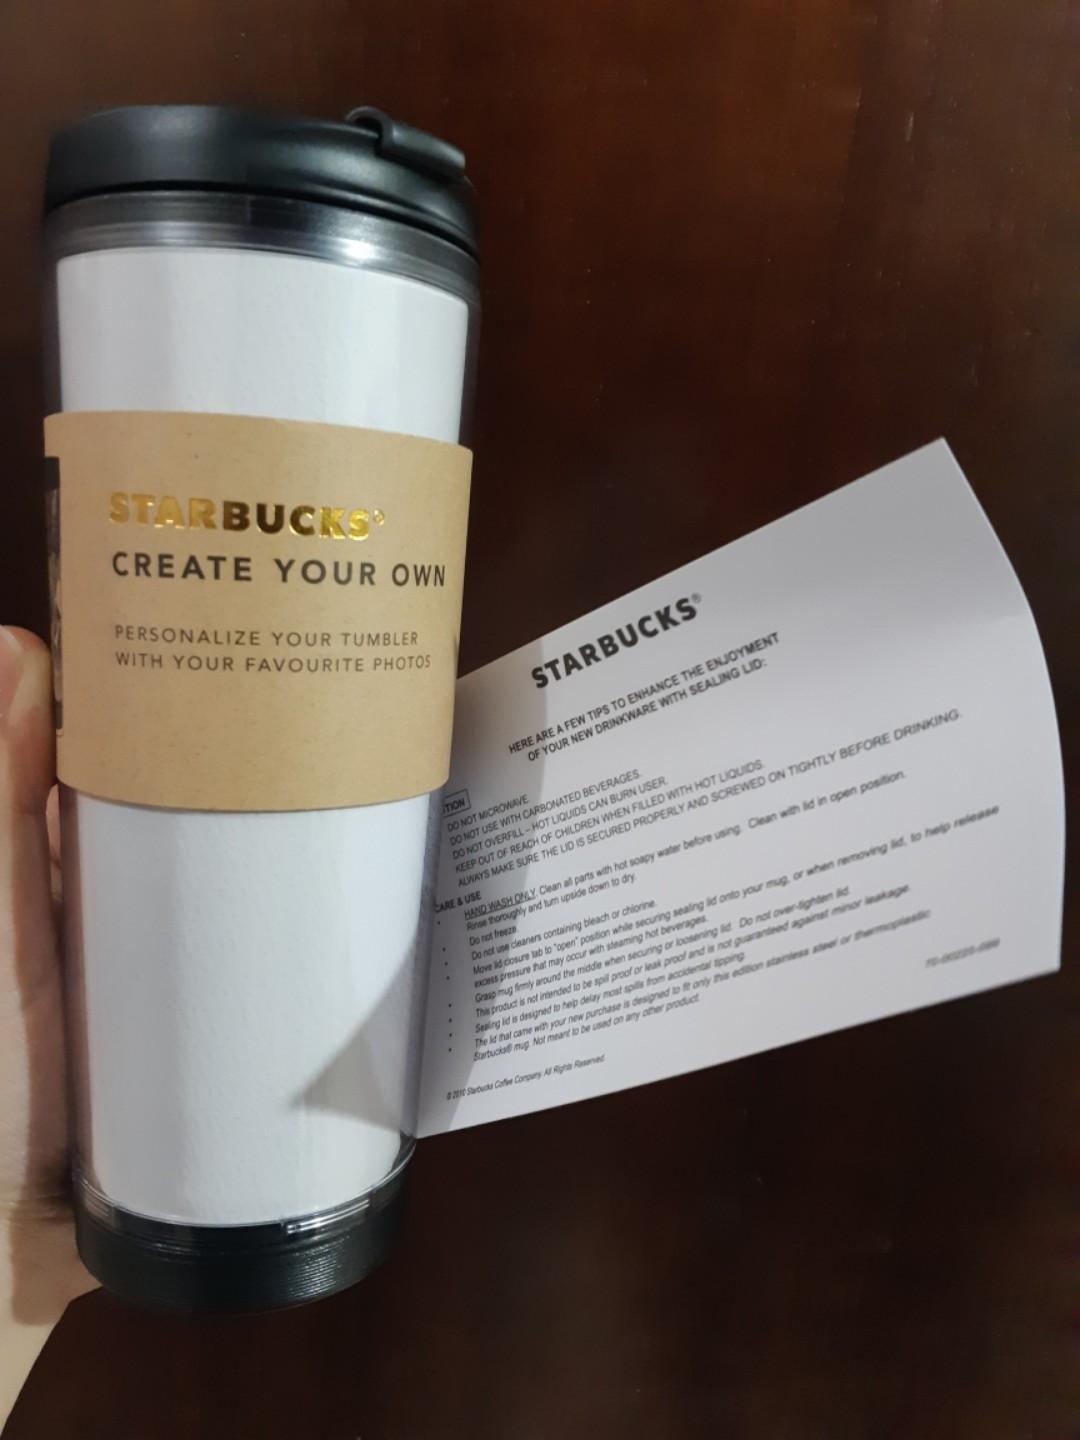 Starbucks Tumbler Creat Your Own 355 ml